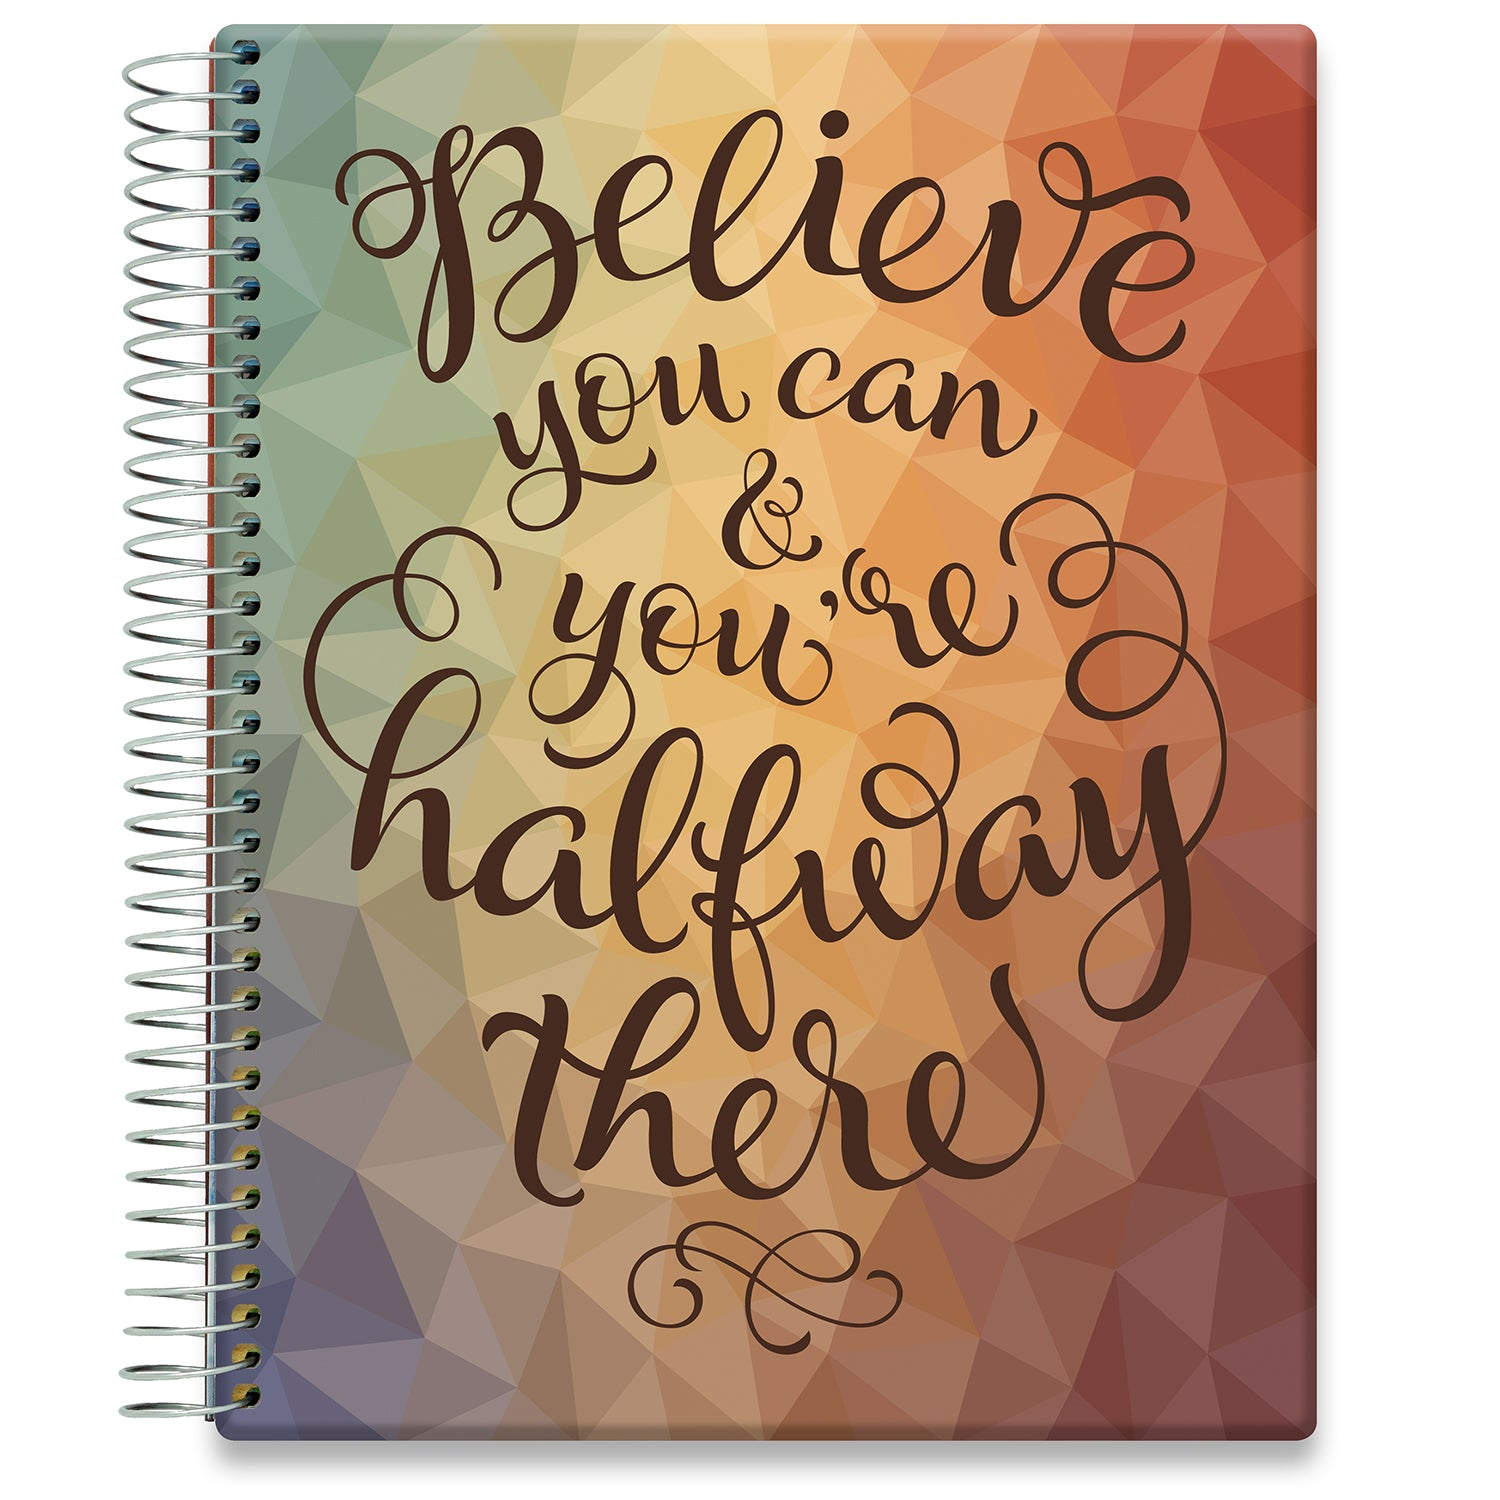 Planner 2021-2022 • April 2021 to June 2022 Academic Year • 8.5x11 Hardcover • Believe U Can